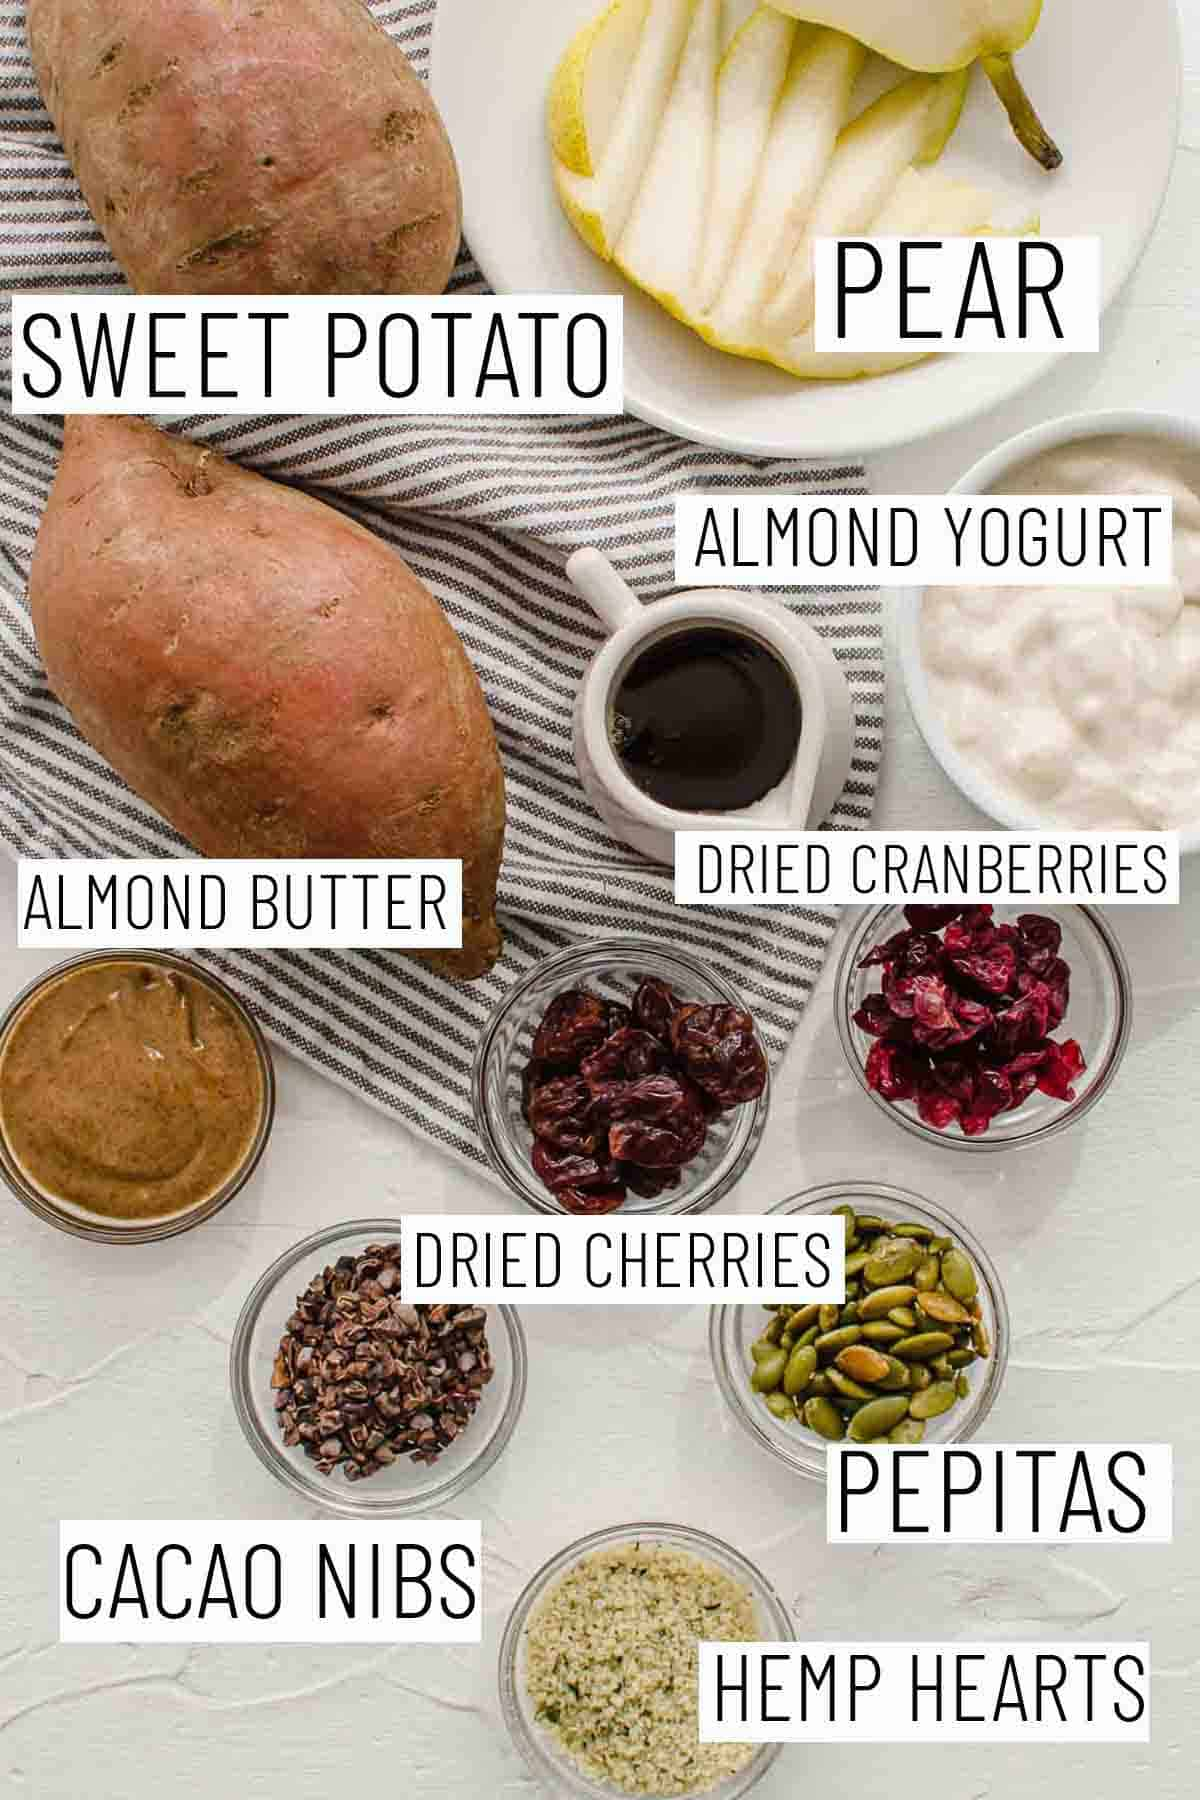 Flat lay image of portioned recipe ingredients including sweet potato, pear, almond yogurt, dried cranberries, almond butter, dried cherries, pepitas, cacao nibs, and hemp hearts.